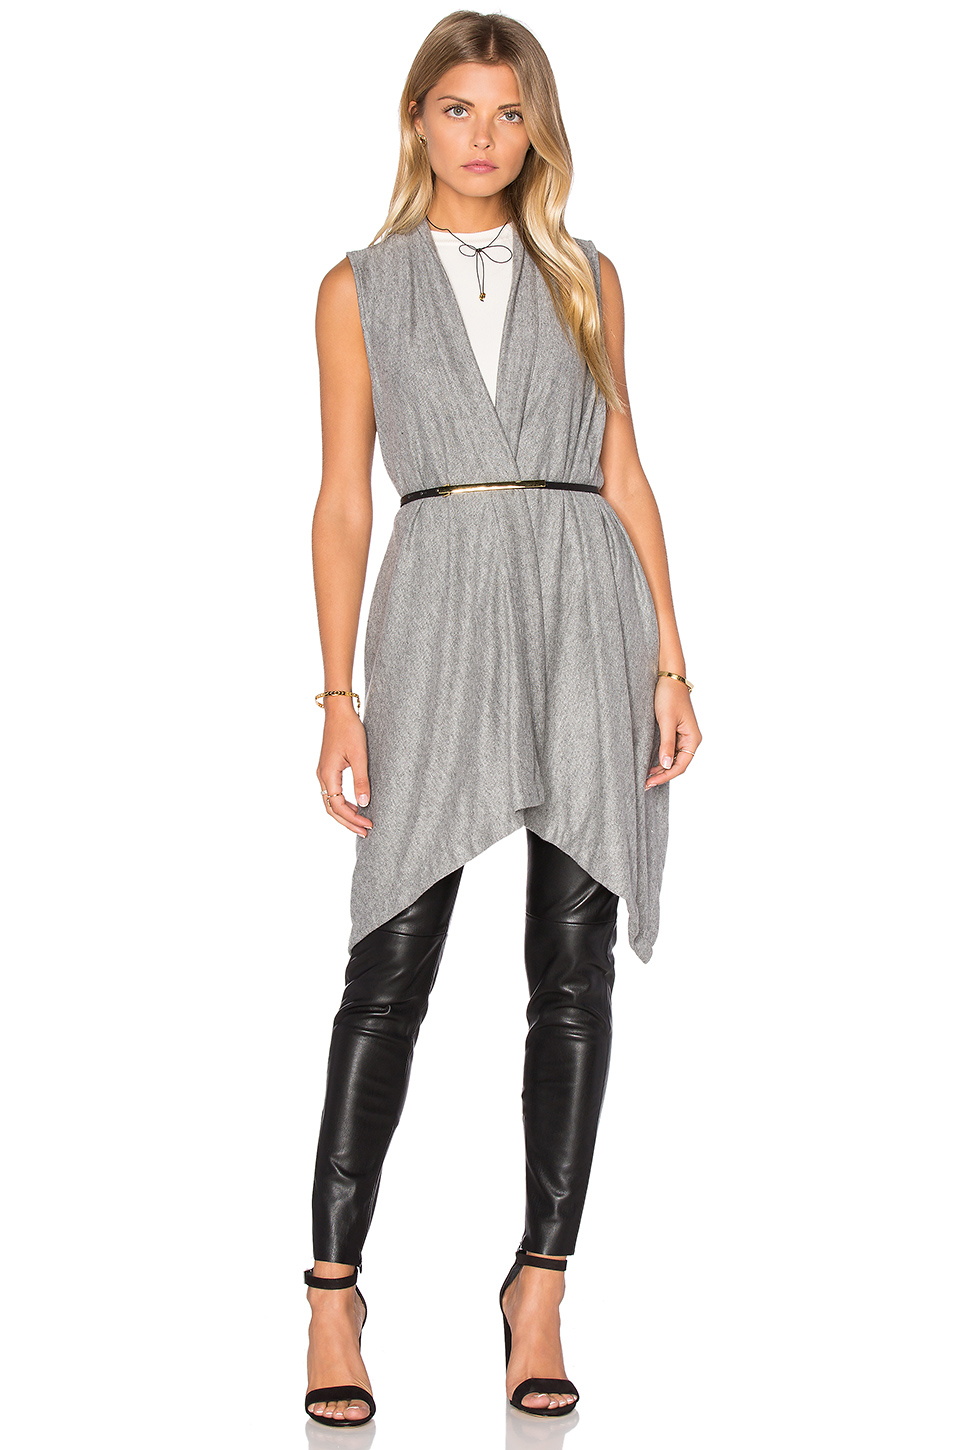 Michael Stars Draped Blanket Vest. Revolve Clothing. $118.